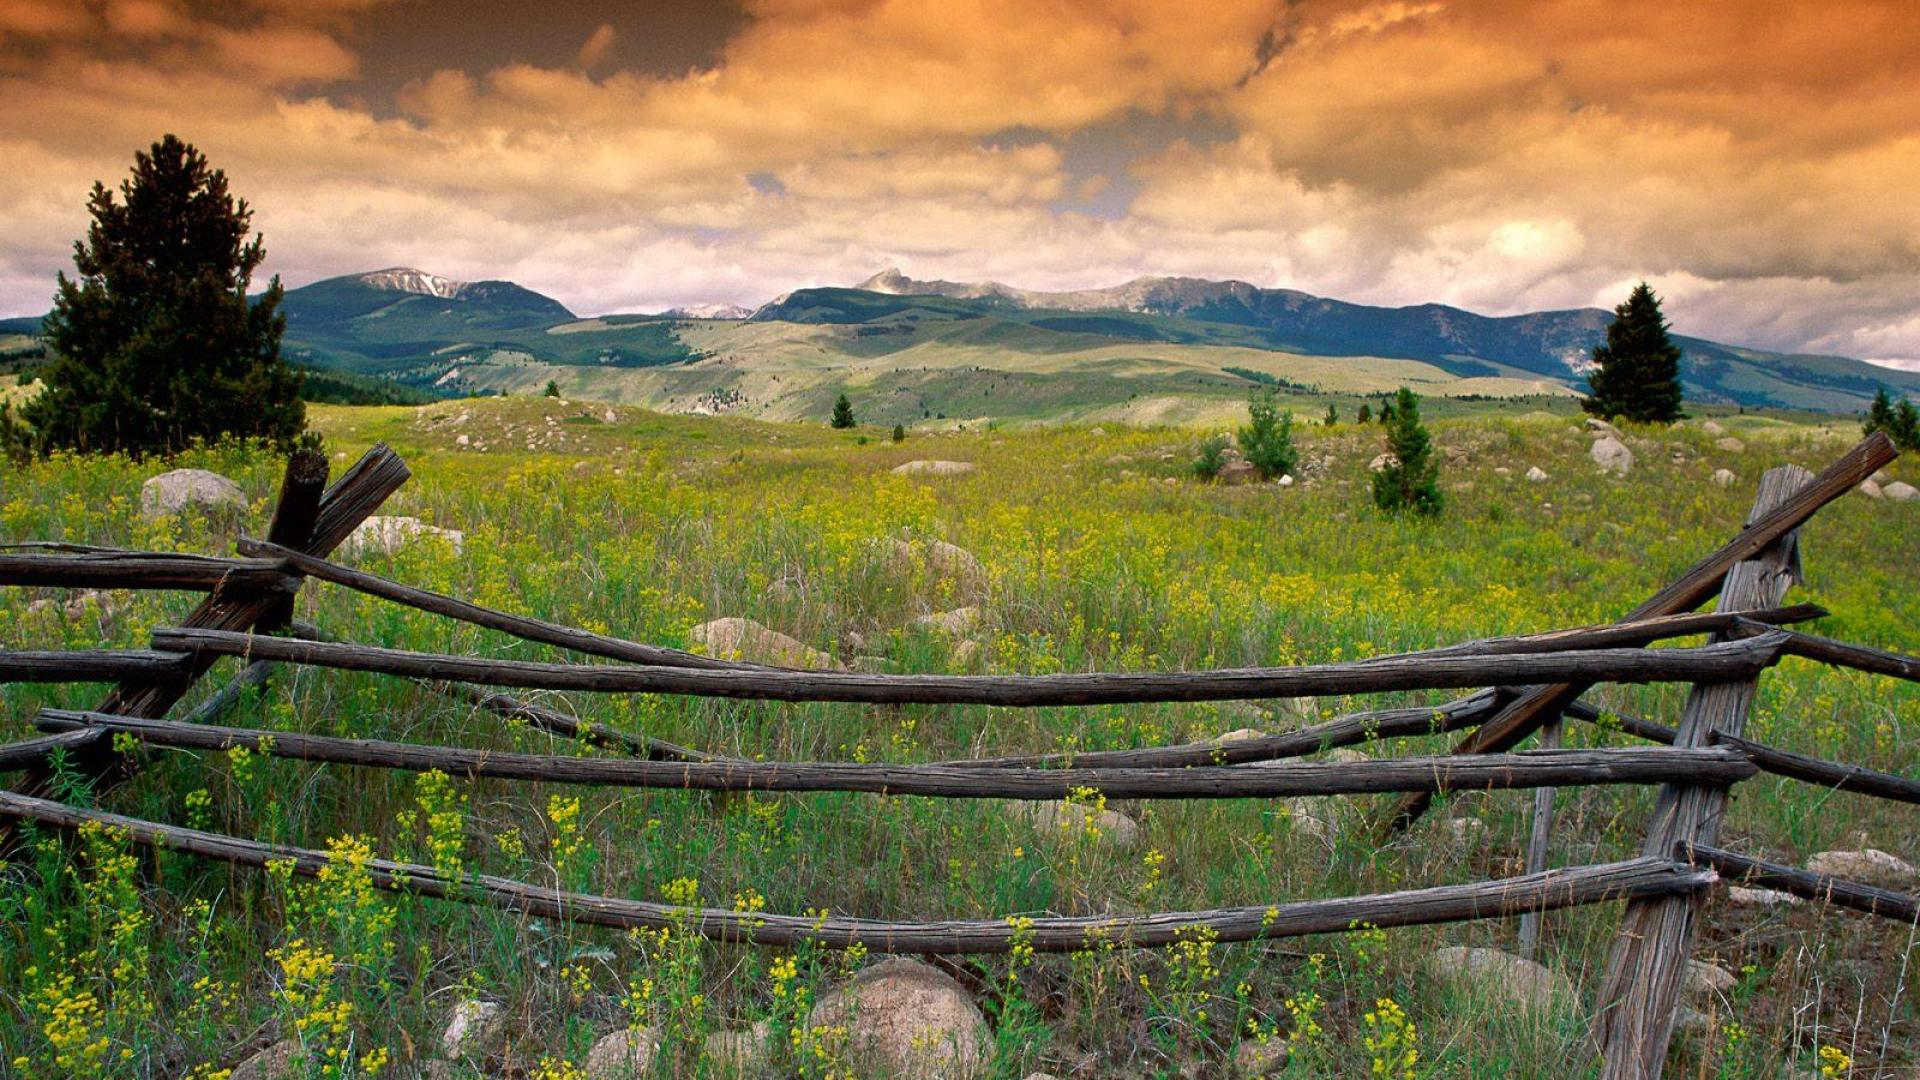 Flint Mountains Wildflowers Montana Hd